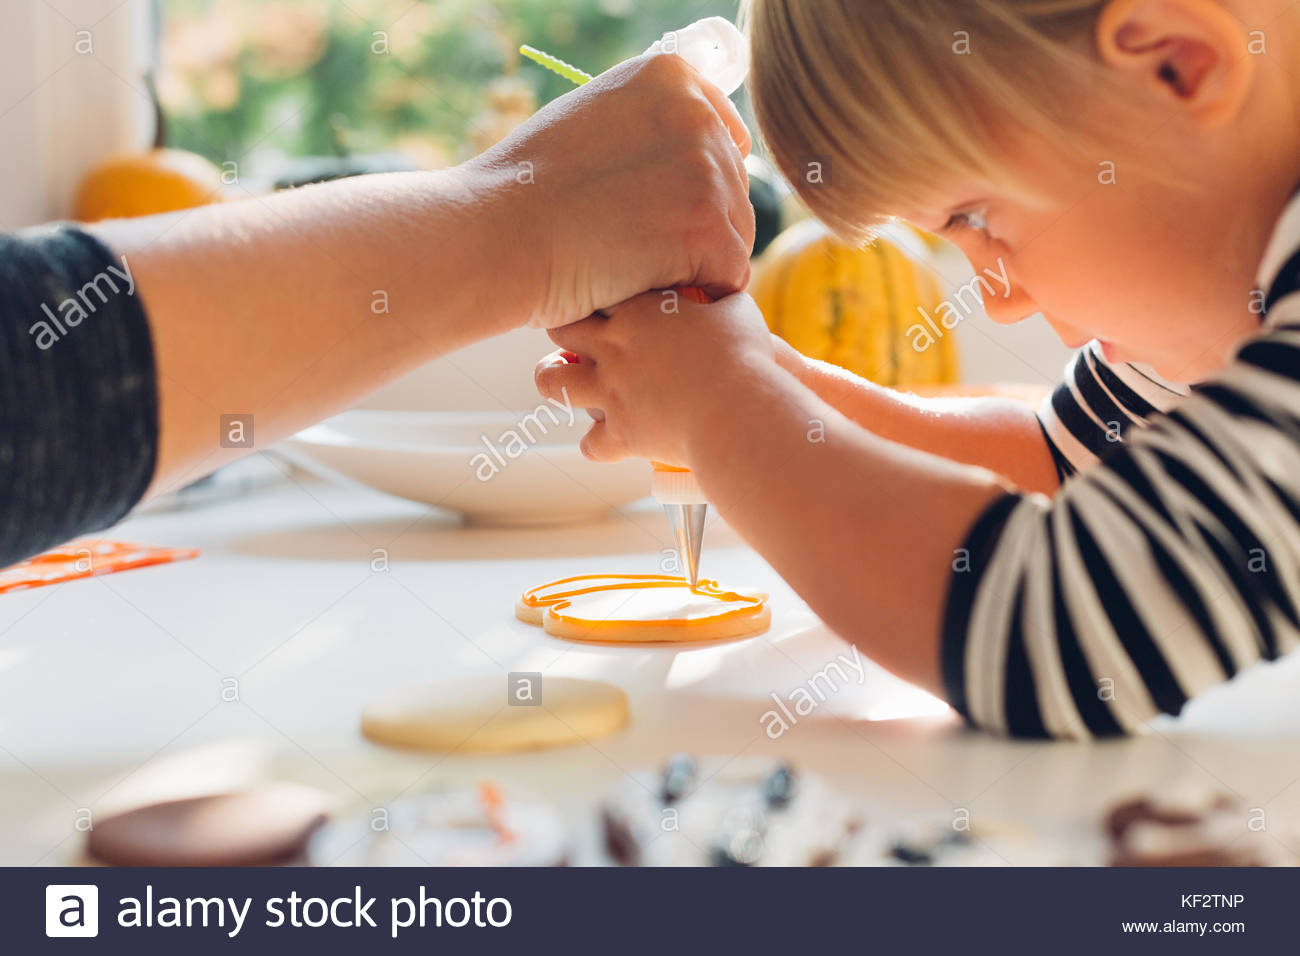 Closeup of Mom and Daughter decorating Halloween Cakes - Stock Image